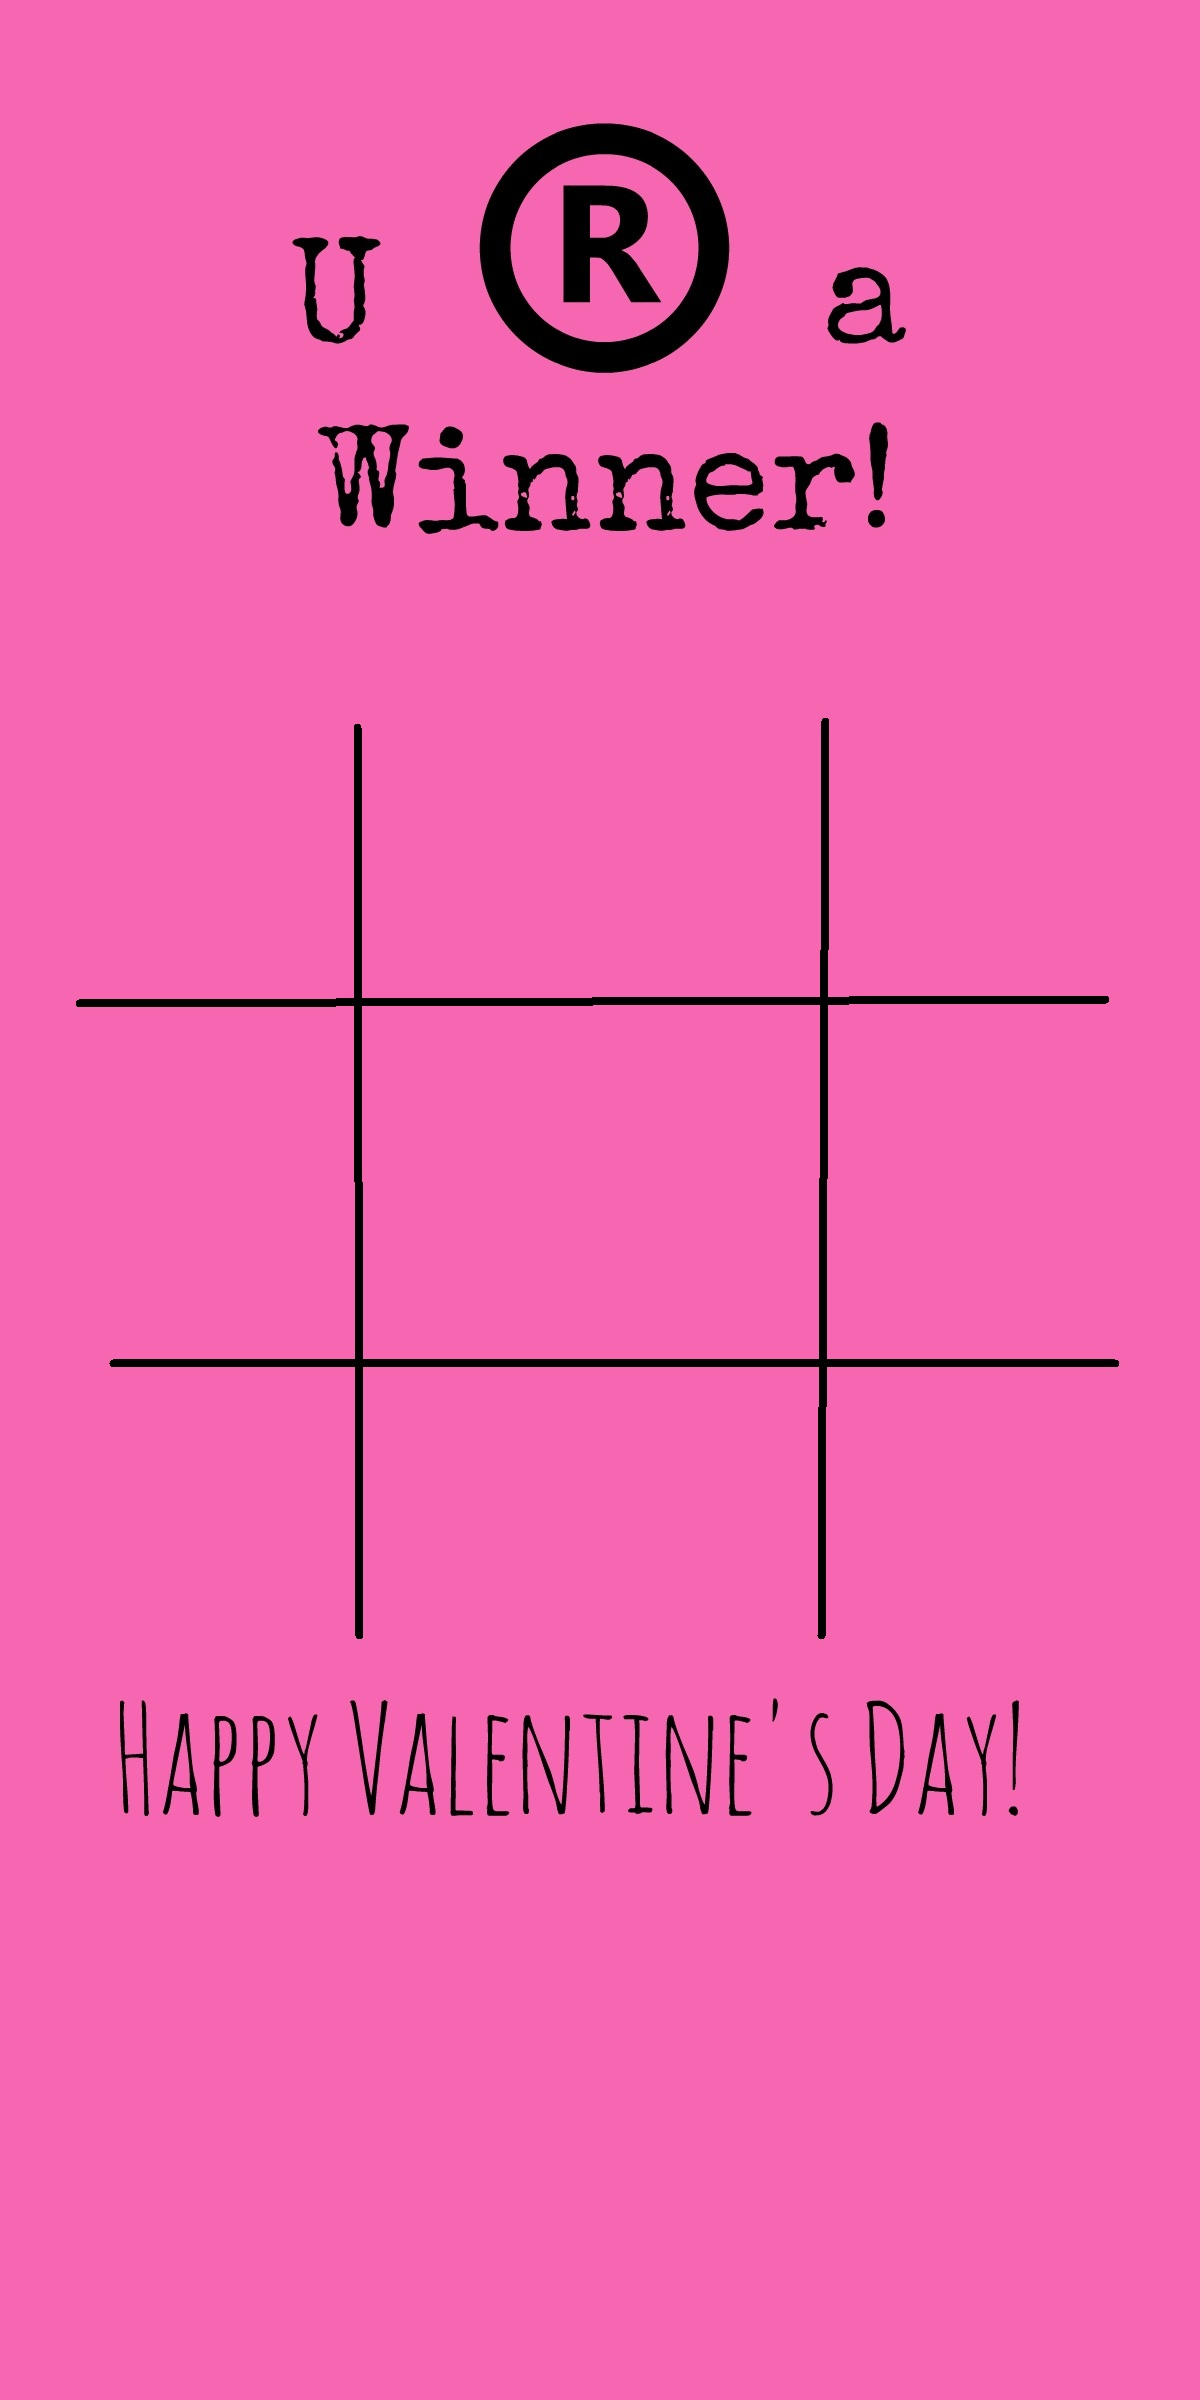 image regarding Free Printable Tic Tac Toe Board named Tic Tac Toe Recreation Board Valentines Working day Card Principle - BargainBriana